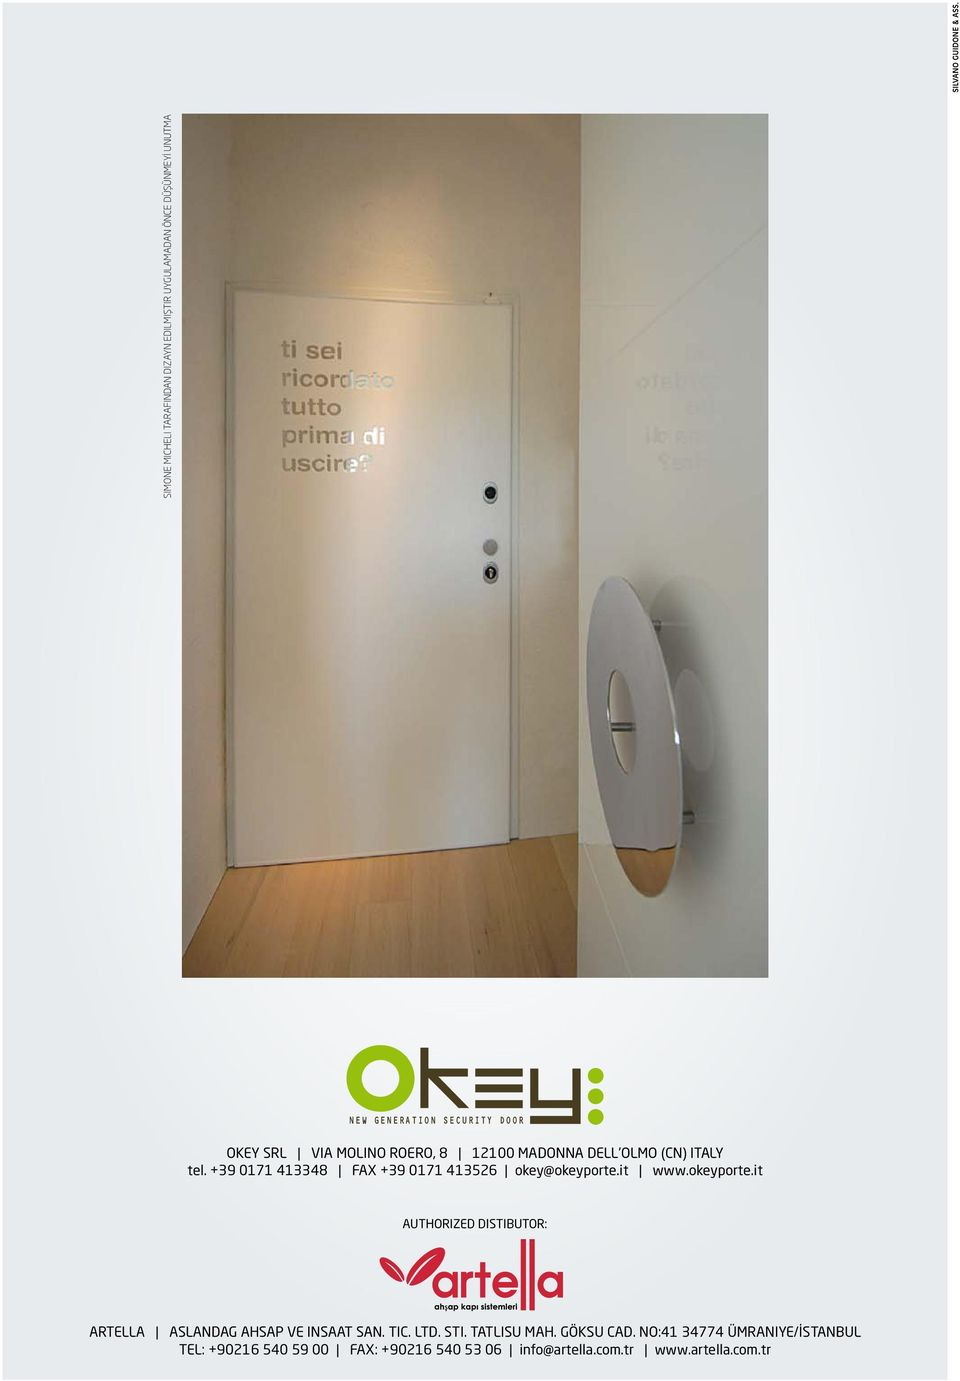 okeyporte.it Authorized Distibutor: Artella Aslandag Ahsap ve Insaat San. Tic. Ltd. Sti. Tatlısu Mah.